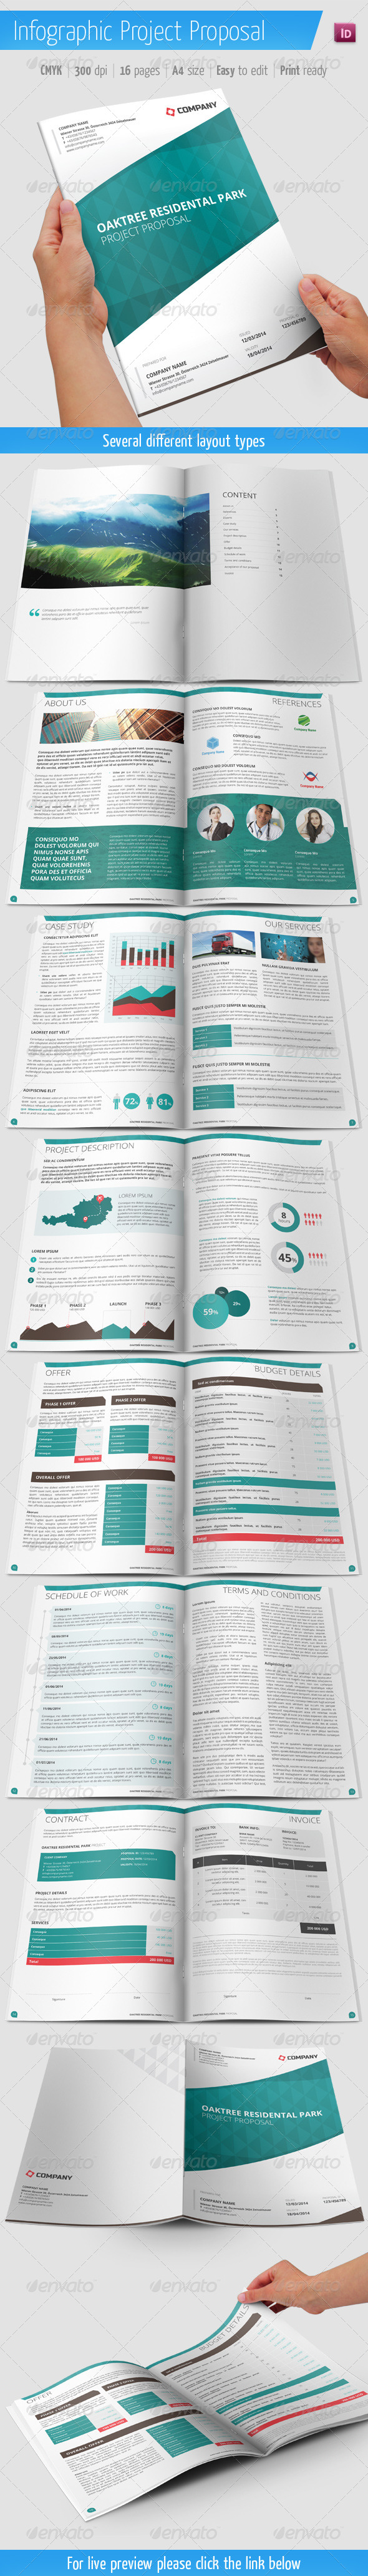 GraphicRiver Project Proposal With Infographic Elements 6057465